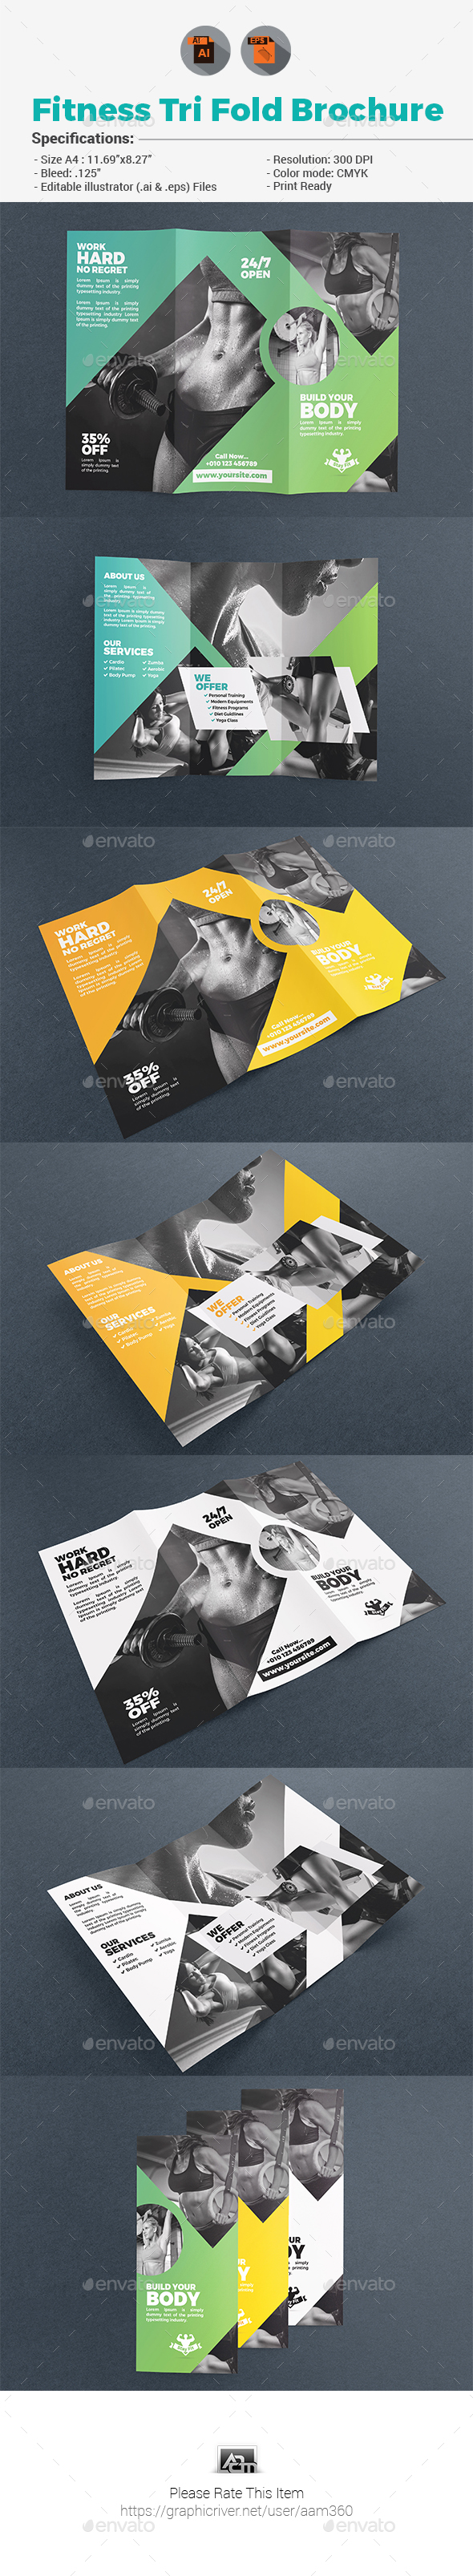 Fitness Tri Fold Brochure - Corporate Flyers